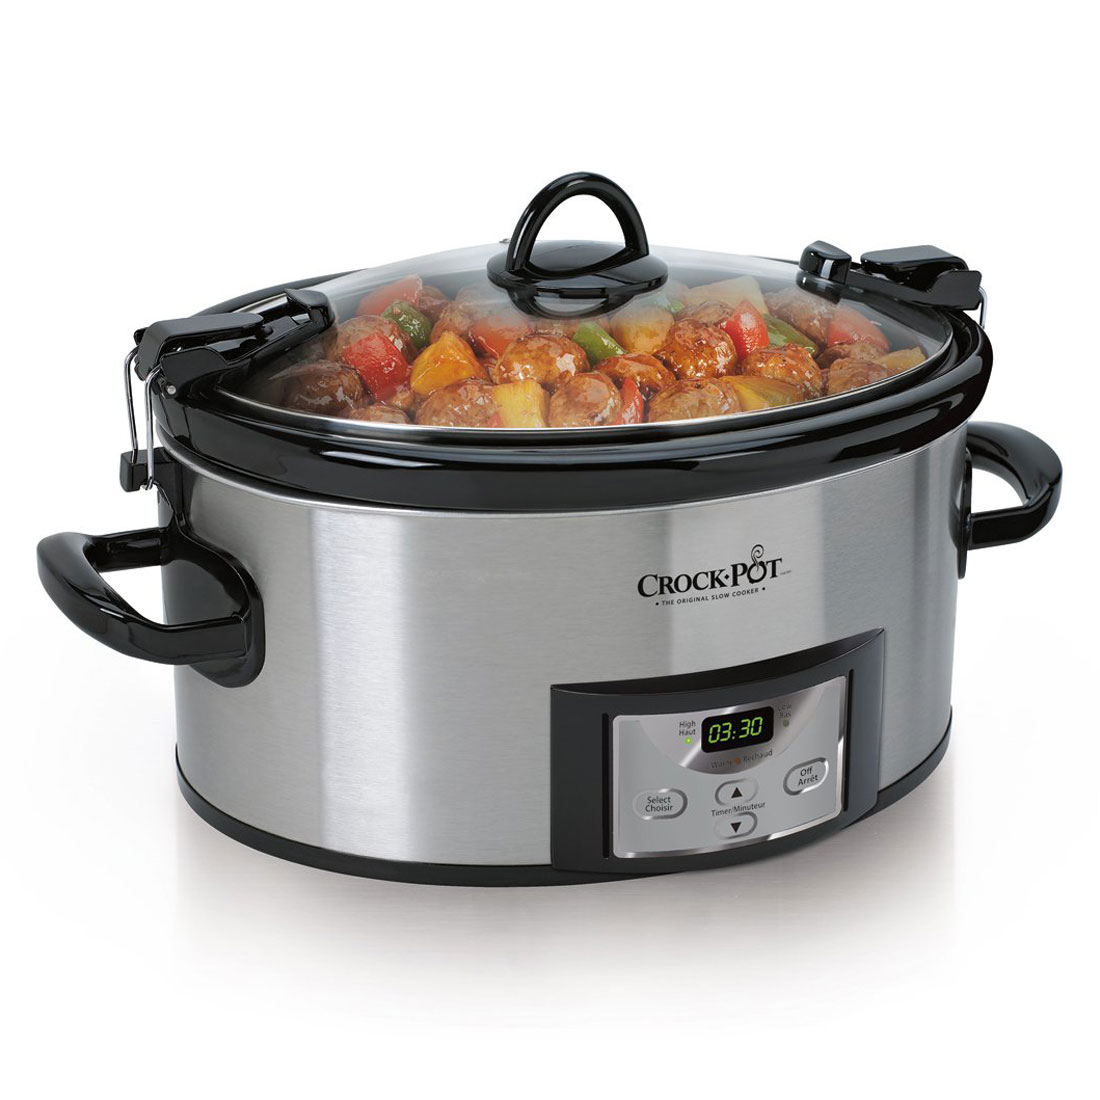 Crock-Pot Cook & Carry 6-Qt Programmable Slow Cooker (Certified Refurbished)